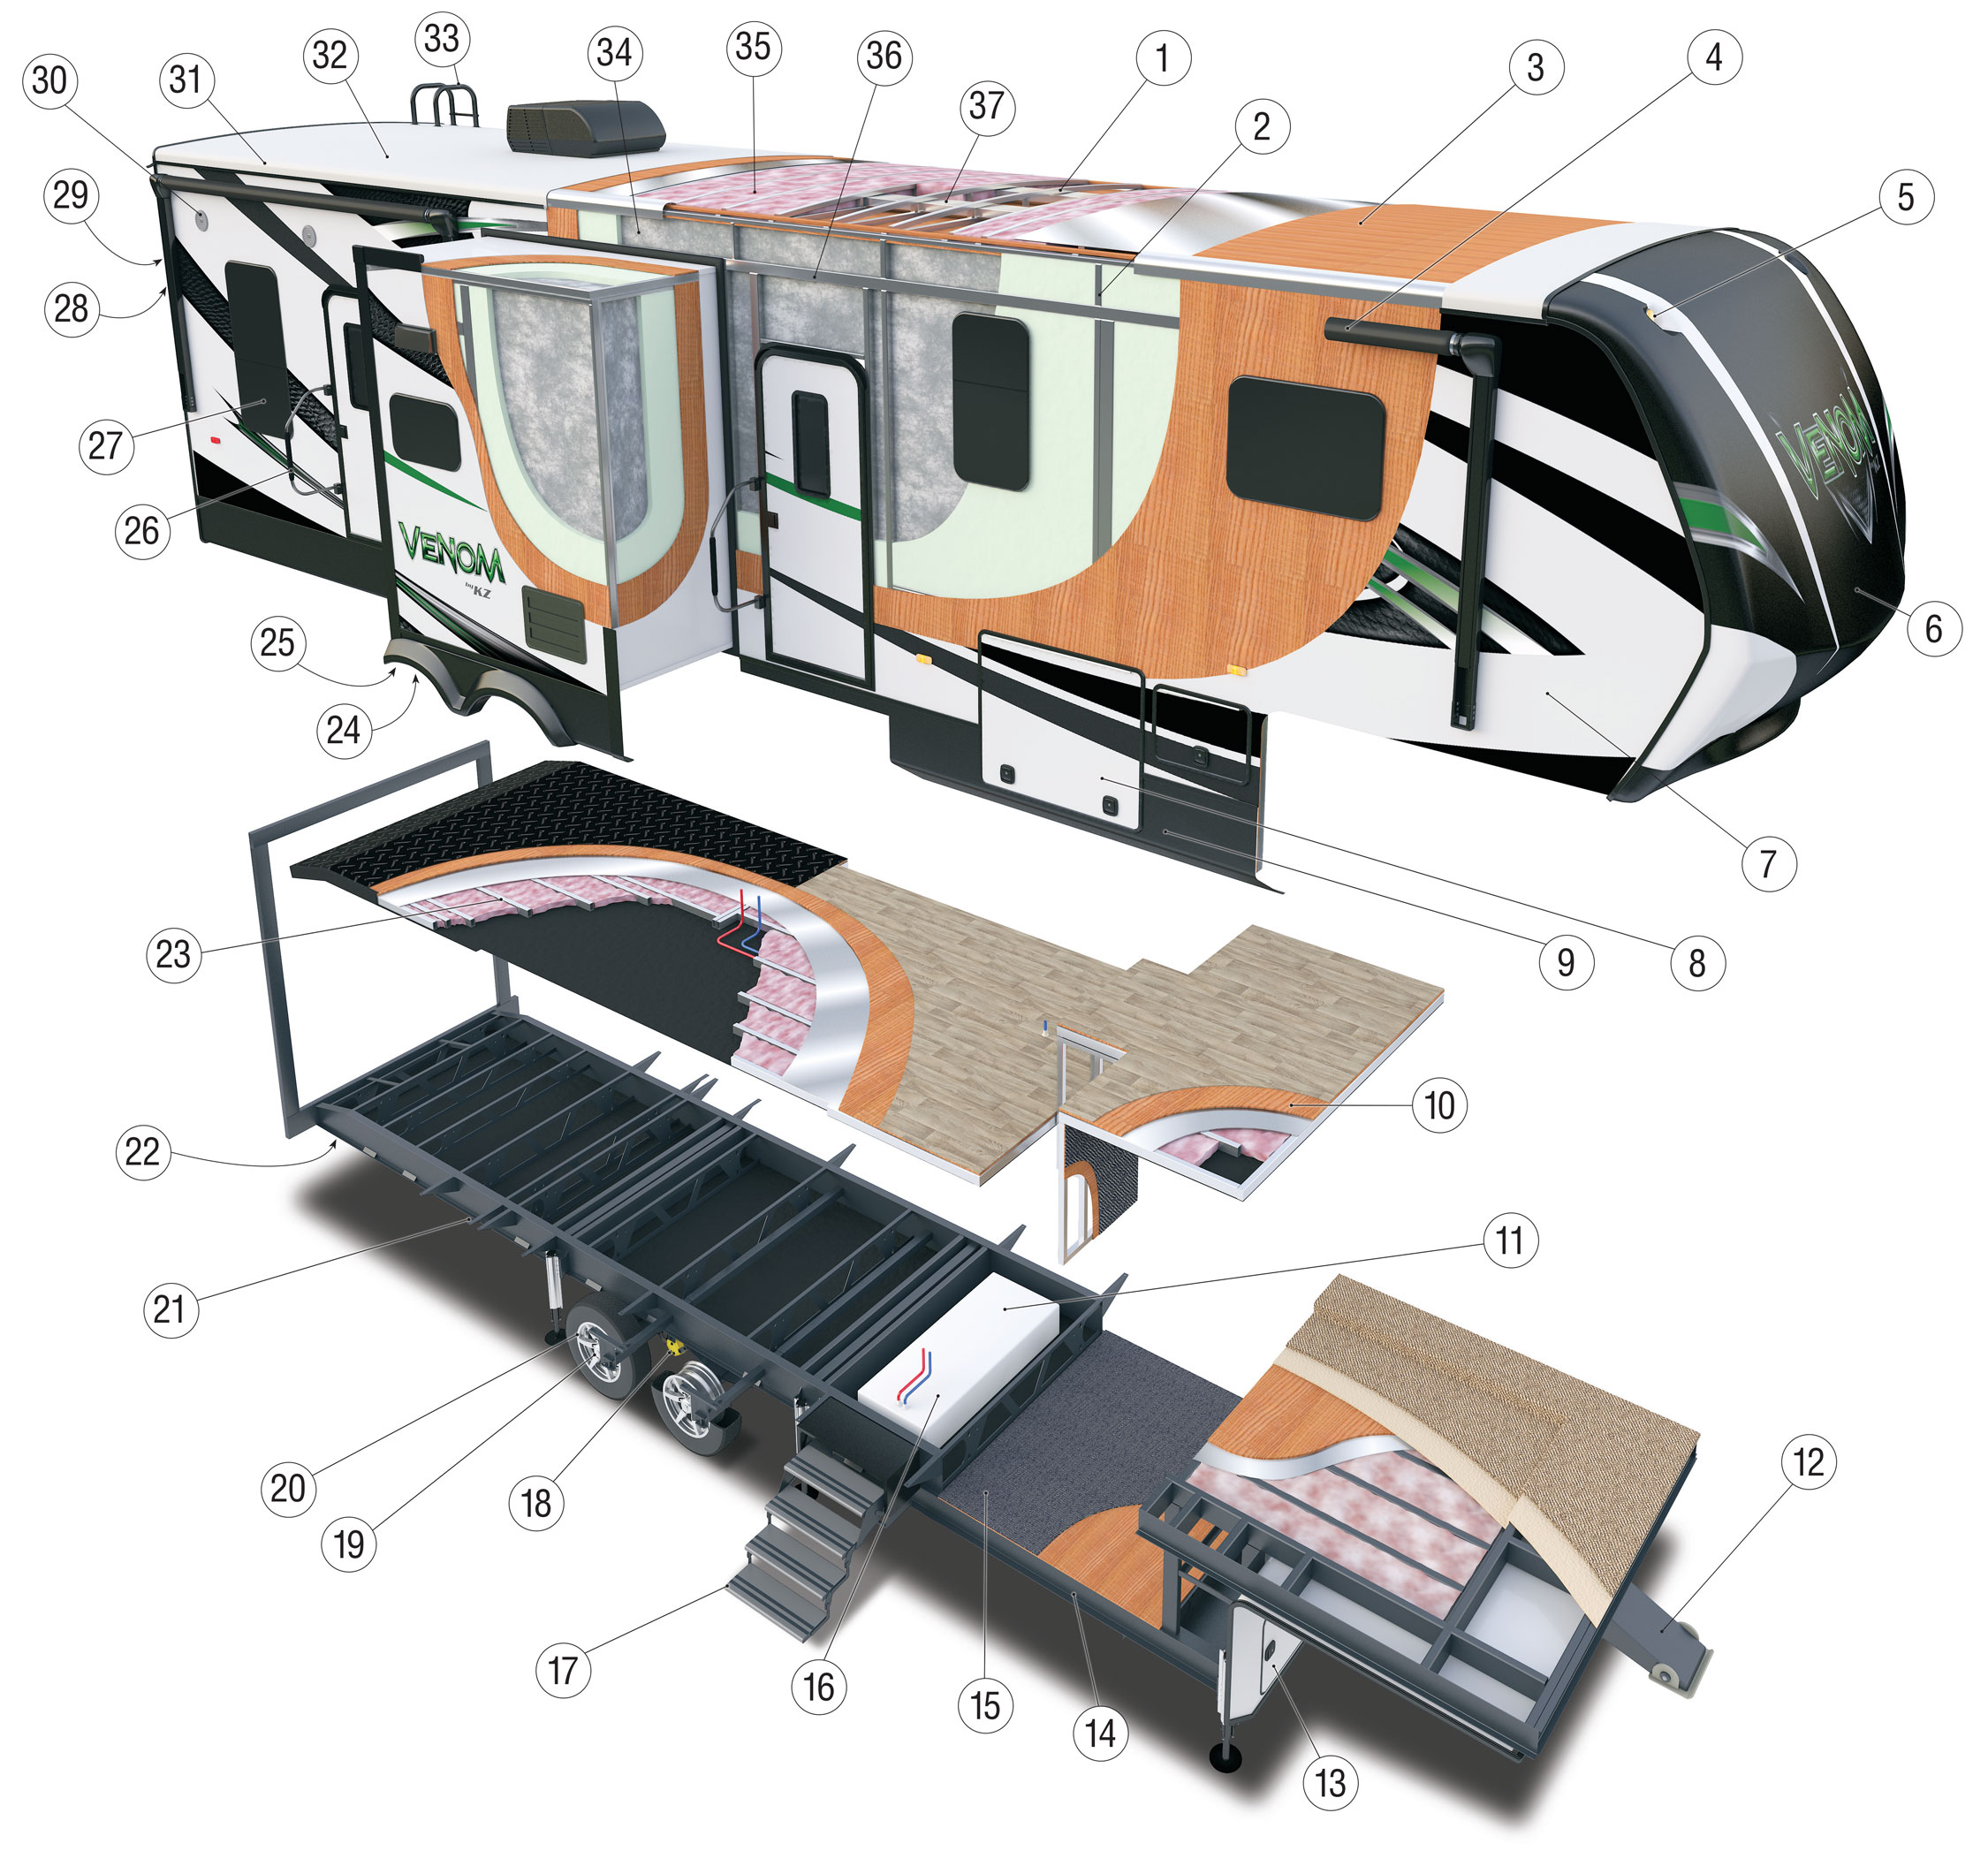 2017 Venom Luxury Fifth Wheel Toy Hauler Features Kz Rv